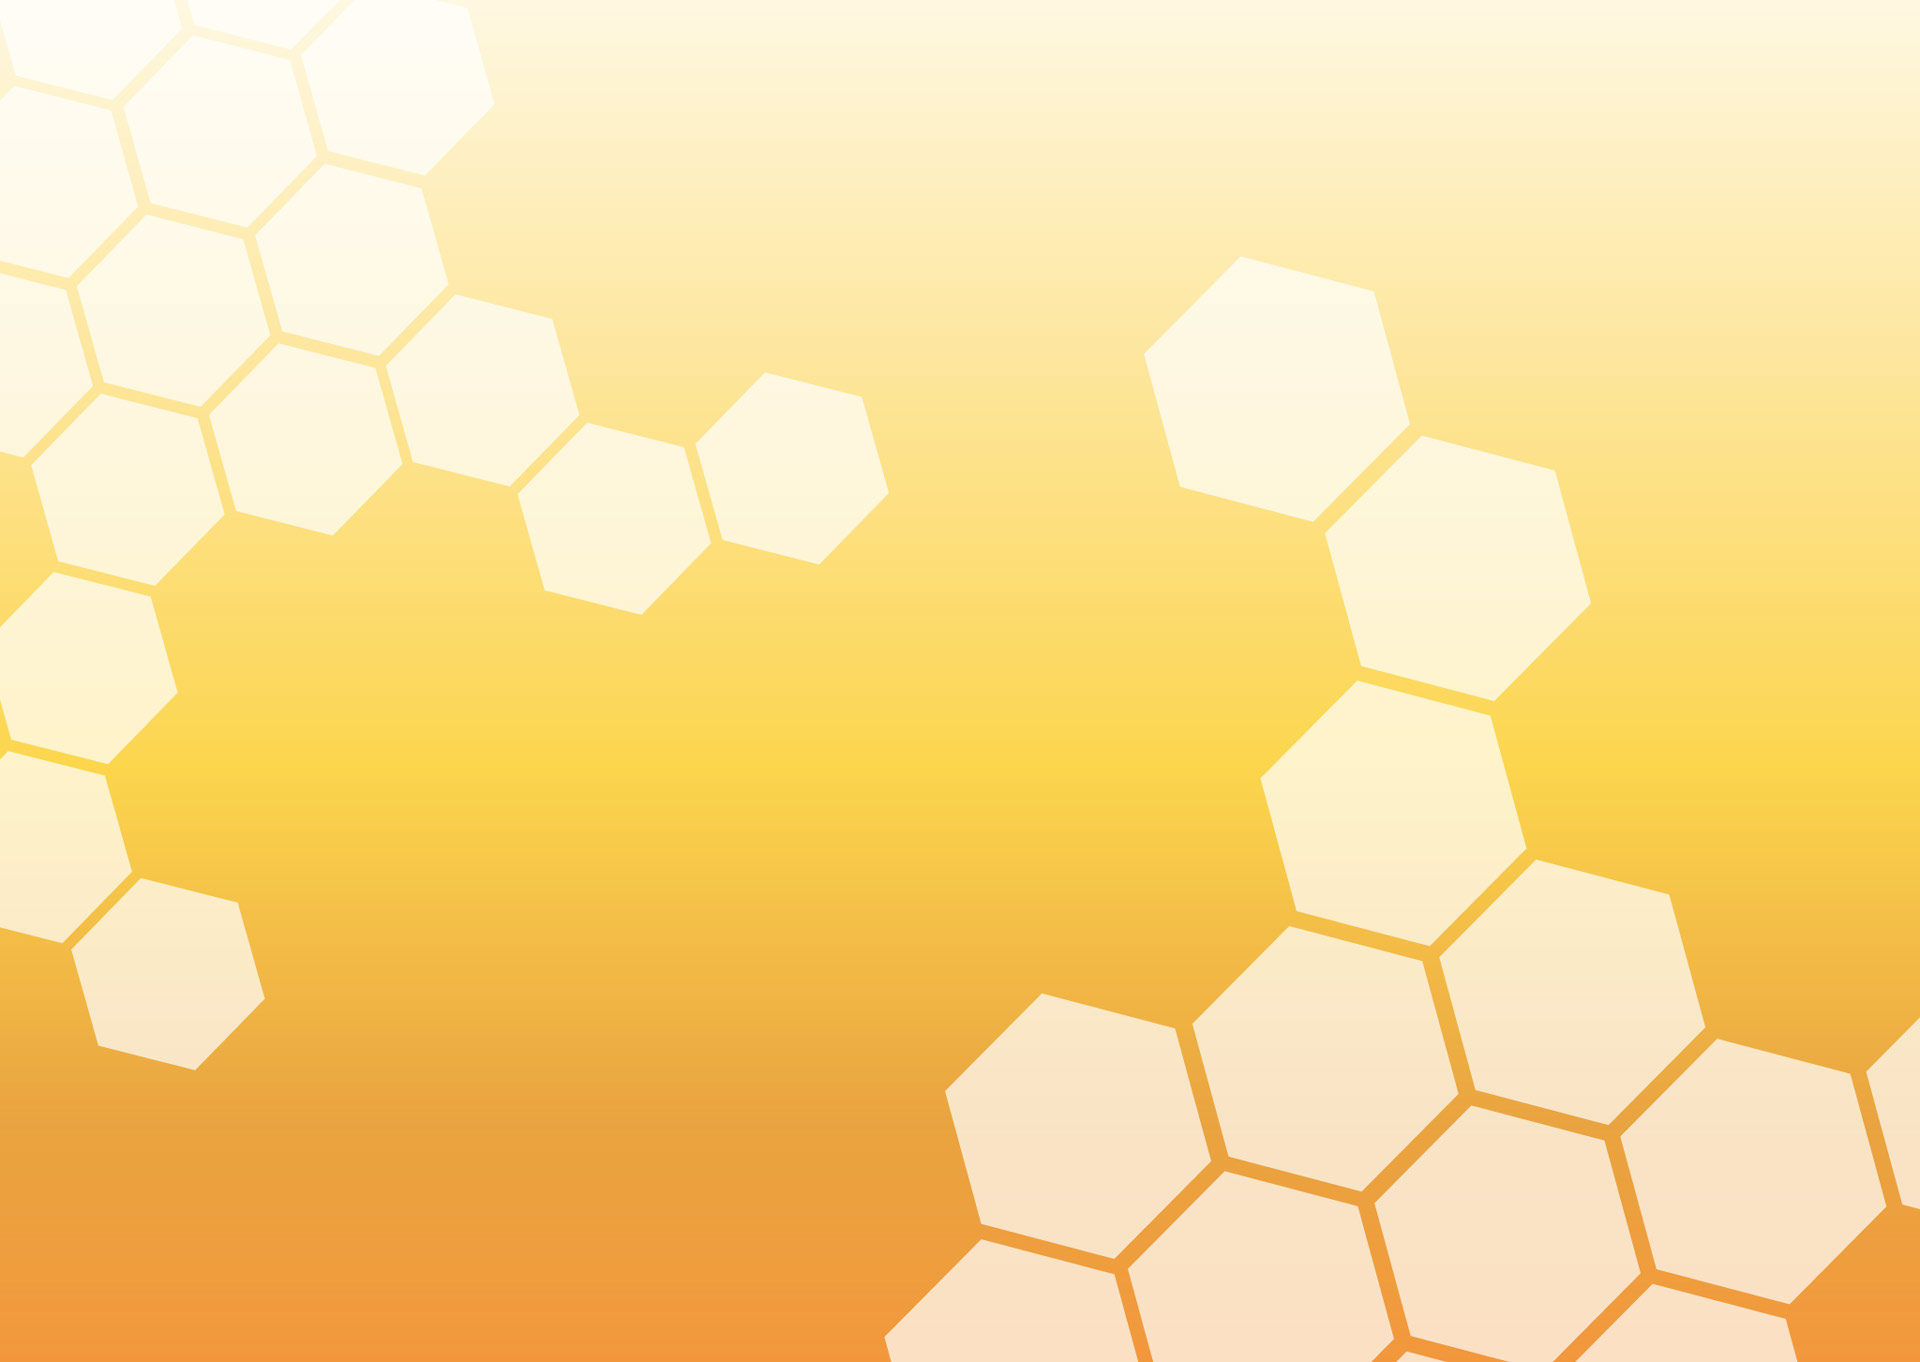 gradient-bg-with-hexagons